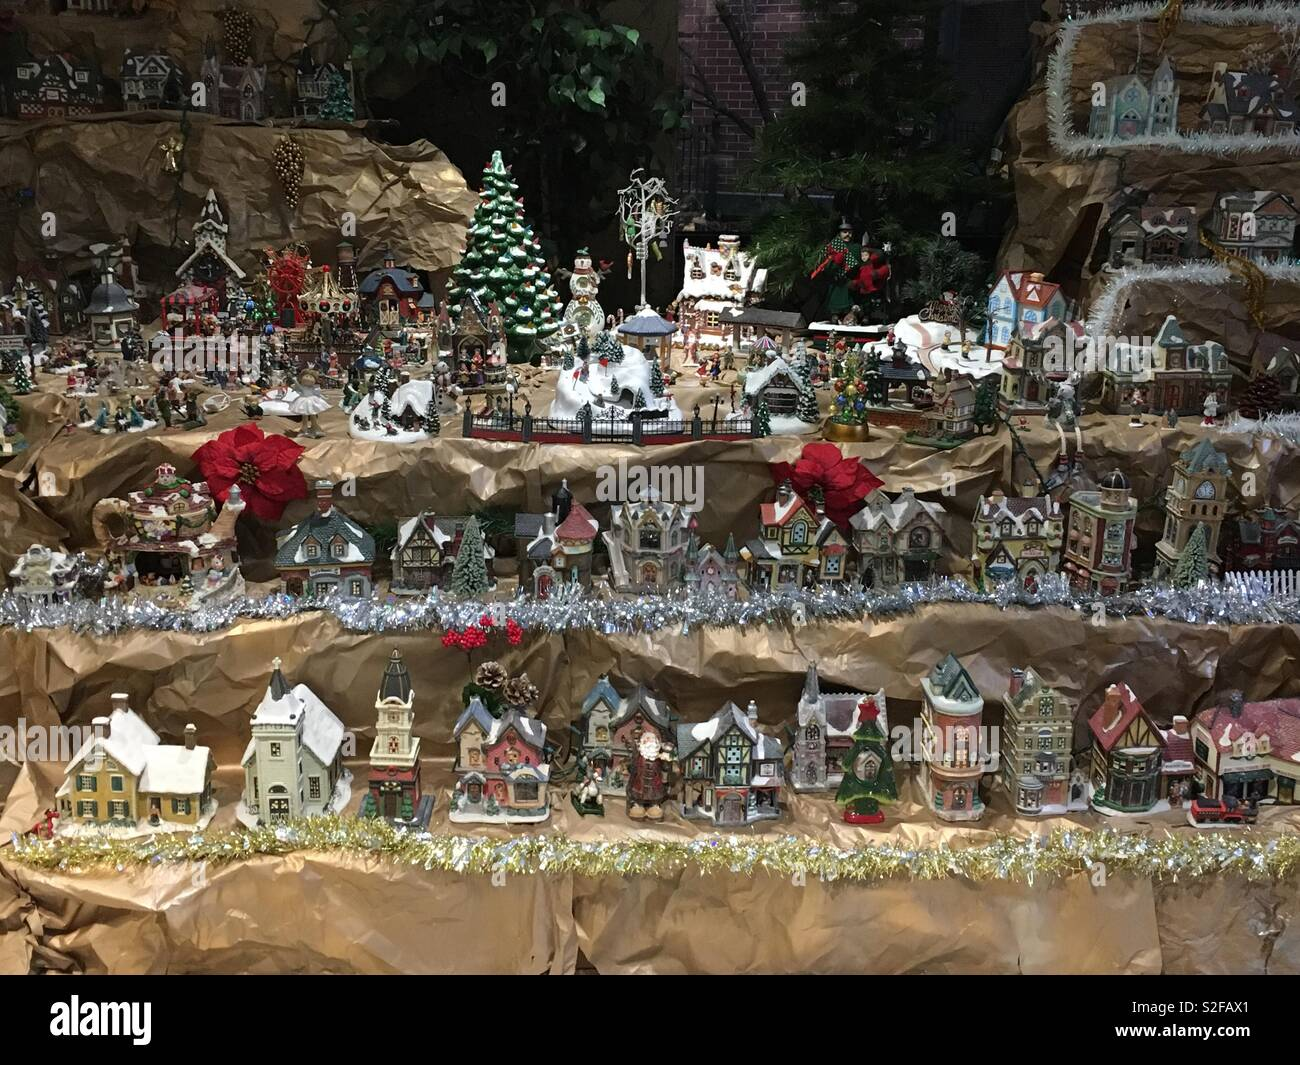 Super Cute Miniature Christmas Village Holiday Decorations Stock